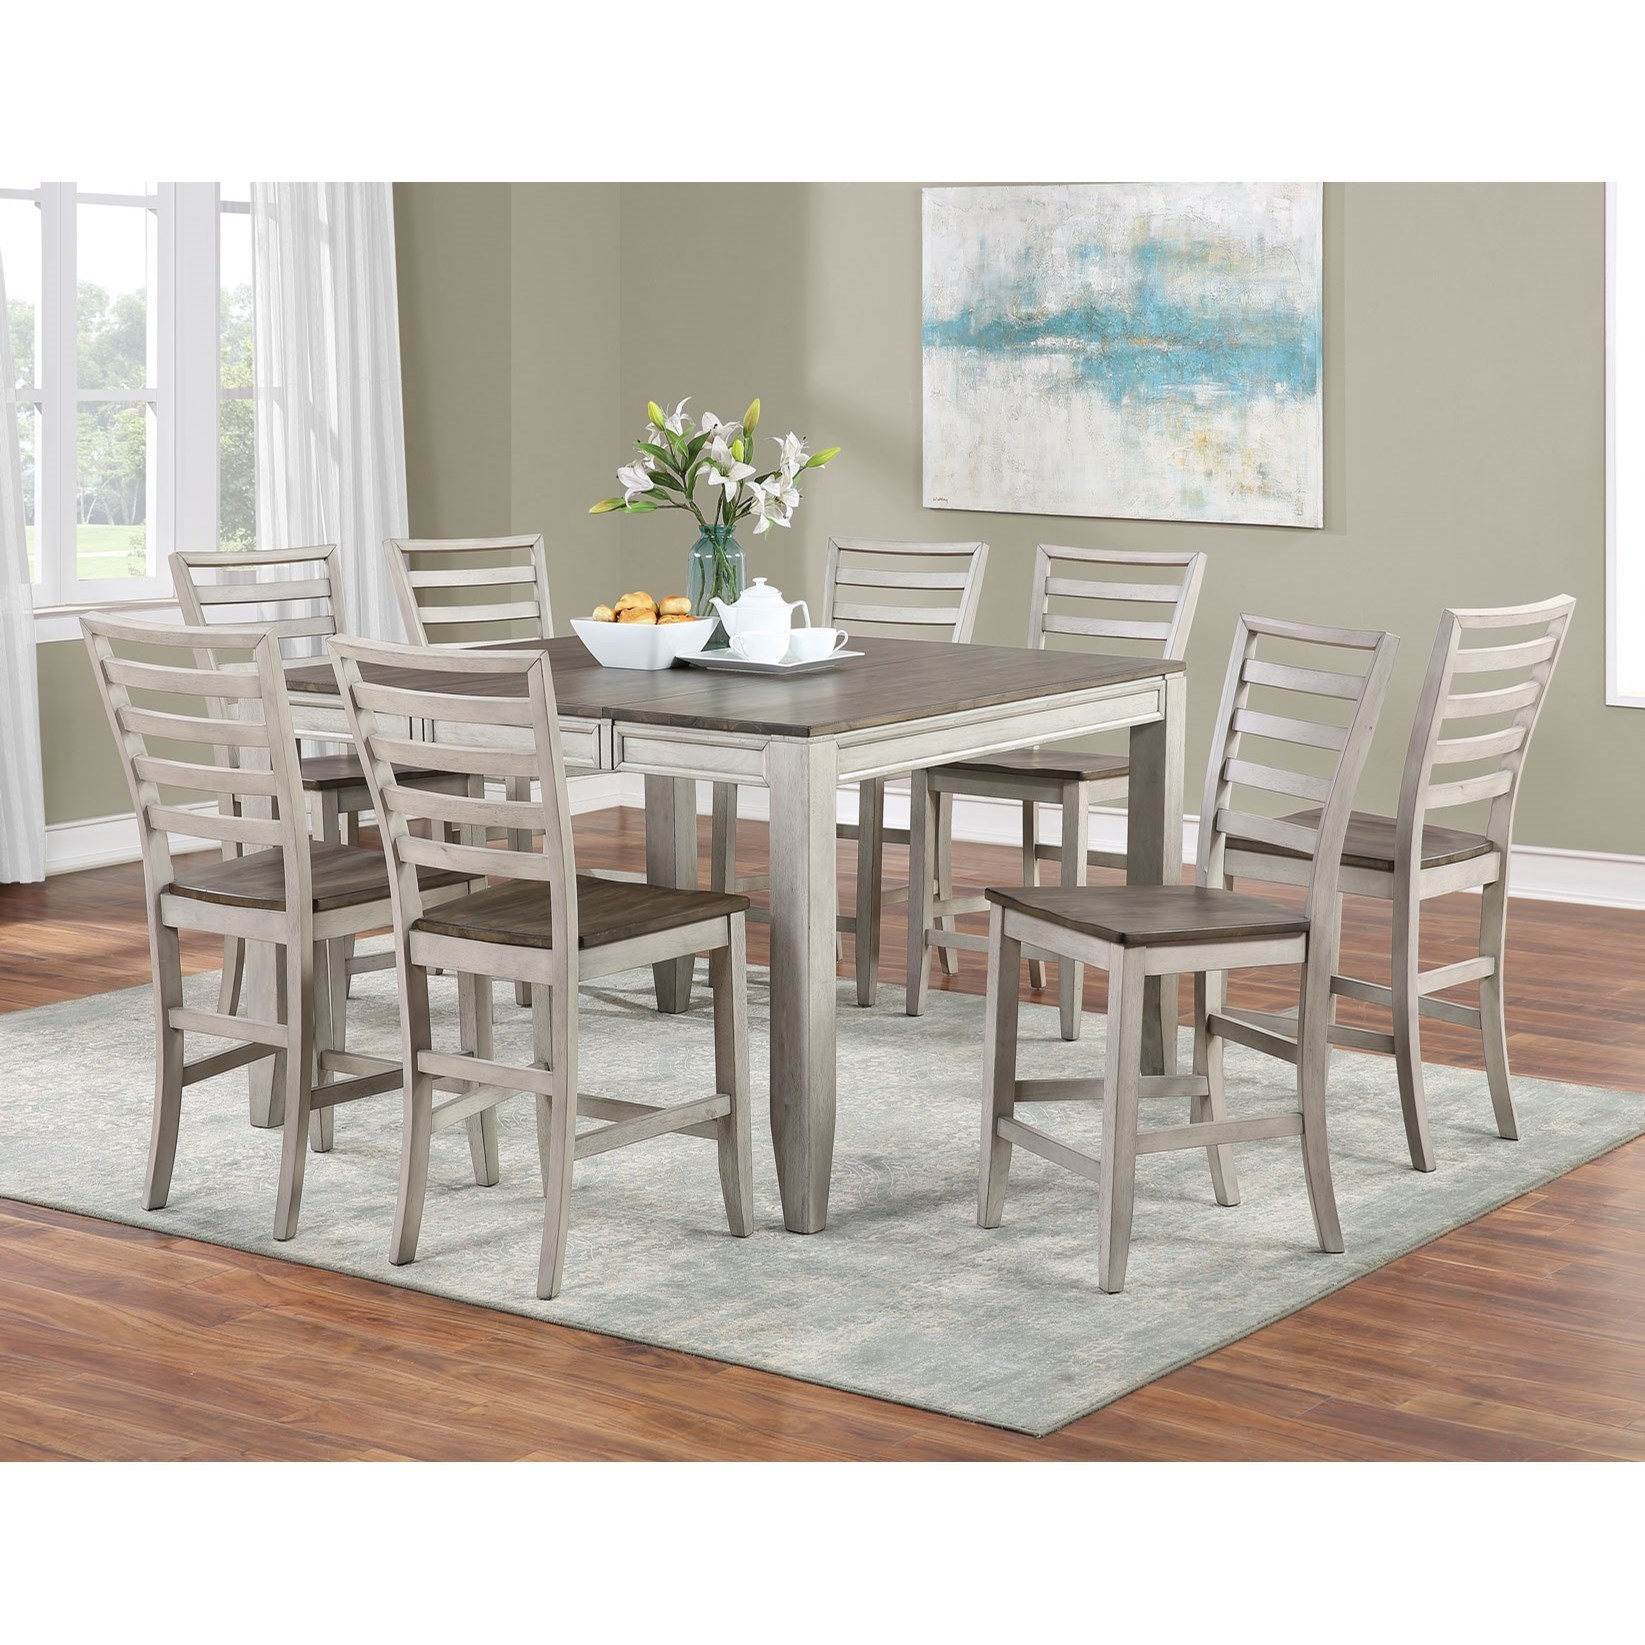 Abacus 9-Piece Counter Table and Chair Set by Steve Silver at Standard Furniture